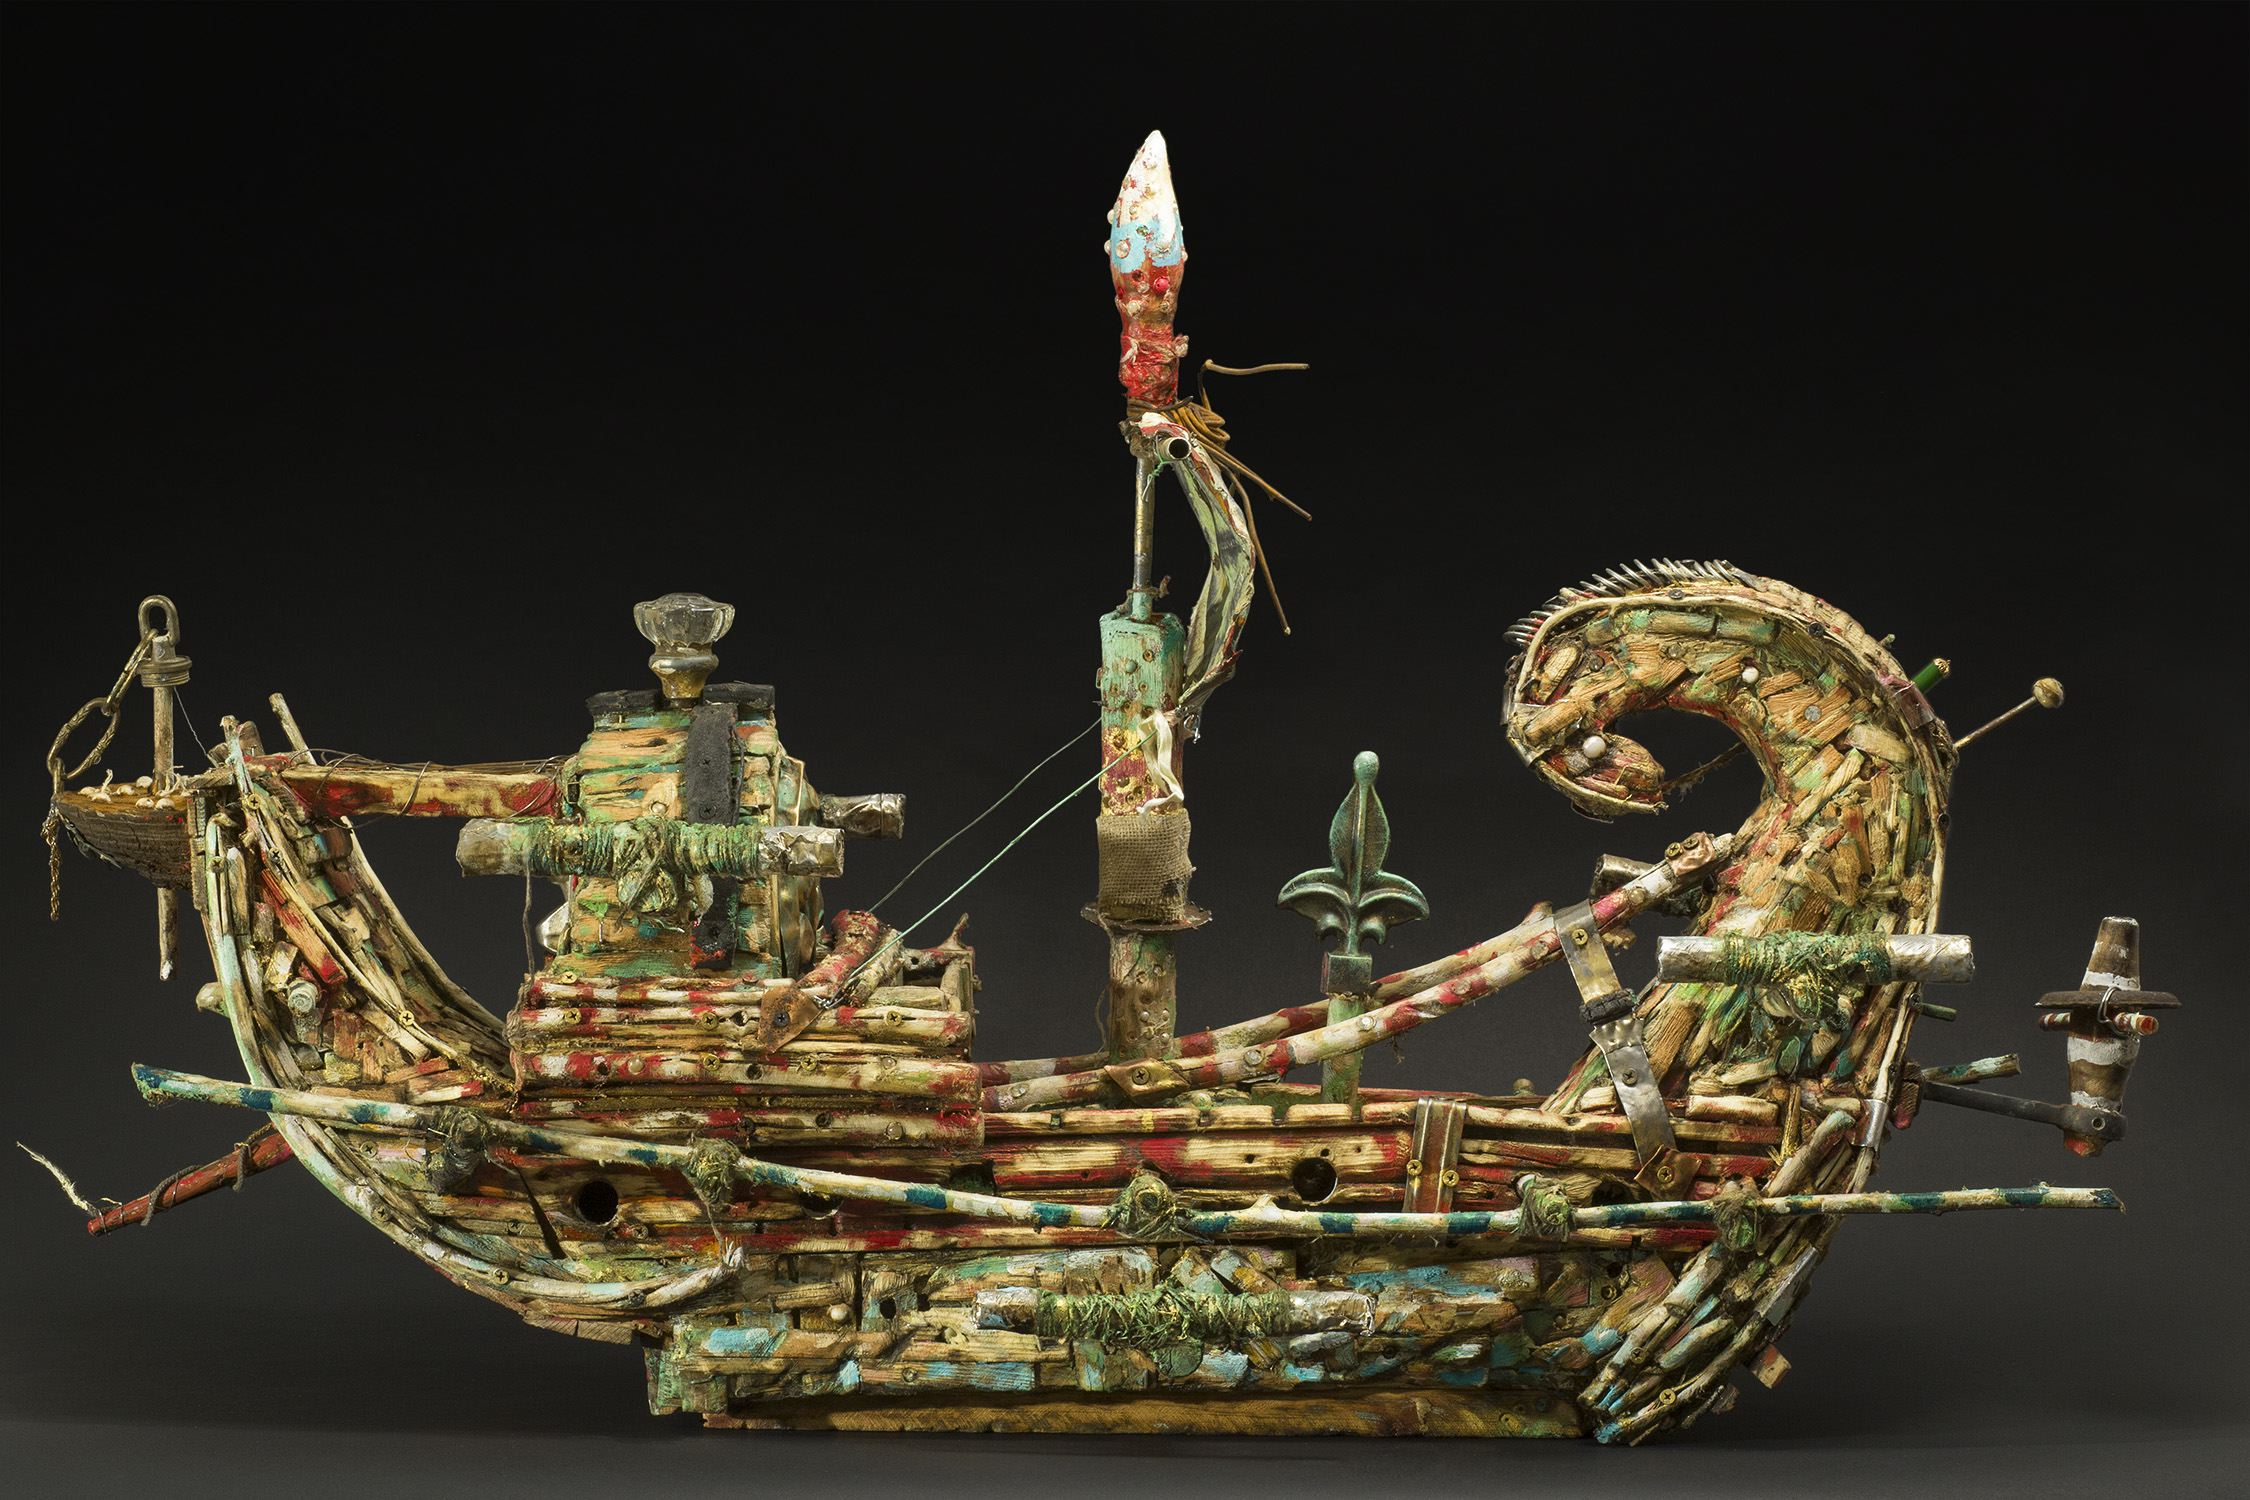 Kevin Sampson    The Madjet  , 2014 Wood, metal, string, and found materials 27 x 25 x 8 inches 68.6 x 63.5 x 20.3 cm SK 204